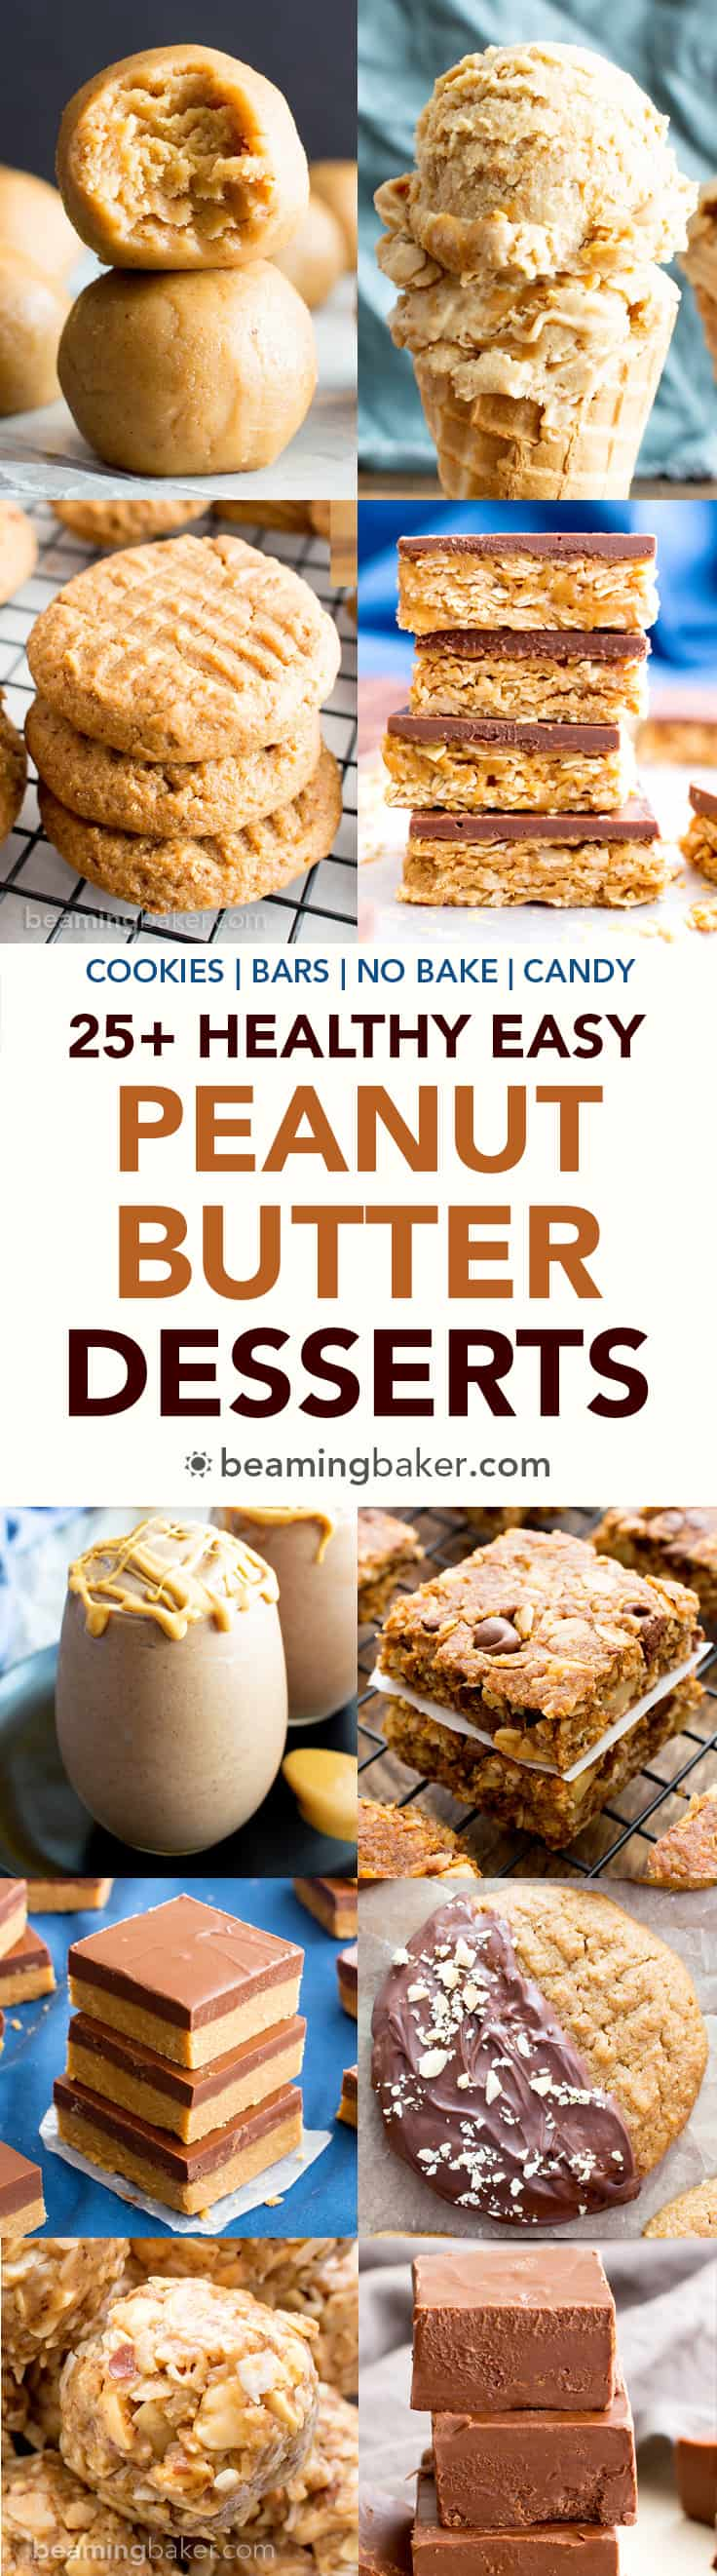 25+ Healthy Easy Peanut Butter Desserts Recipes (V, GF): a seriously sweet collection of the best healthy desserts bursting with peanut butter deliciousness! #Vegan #GlutenFree #DairyFree #RefinedSugarFree #Desserts #PeanutButter | Recipes on BeamingBaker.com